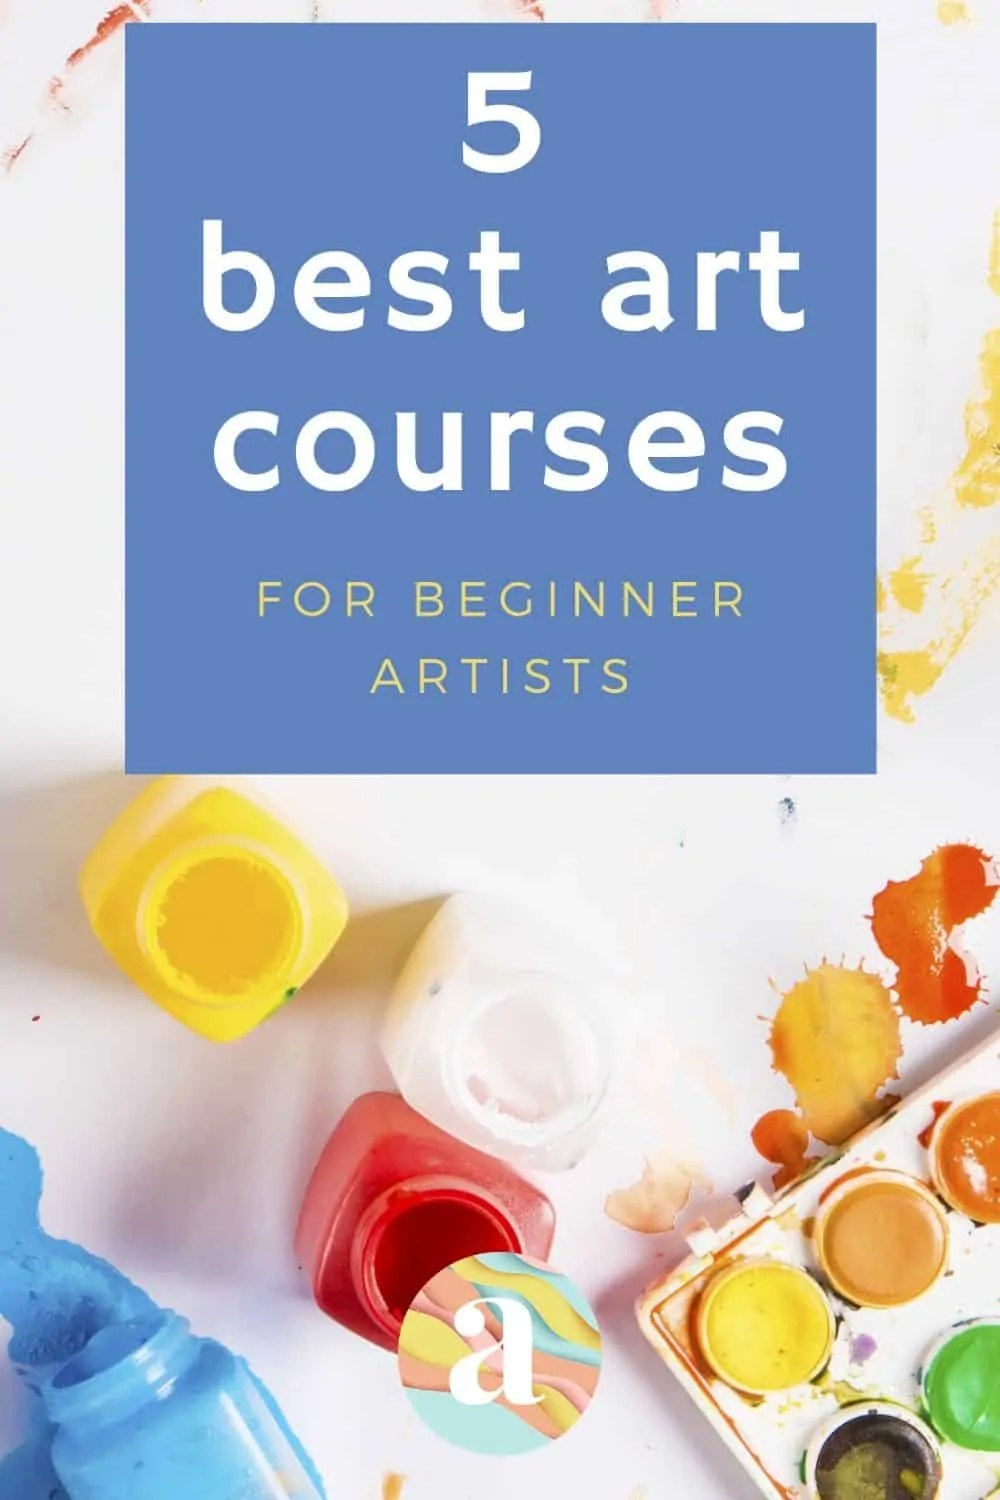 5 best art courses